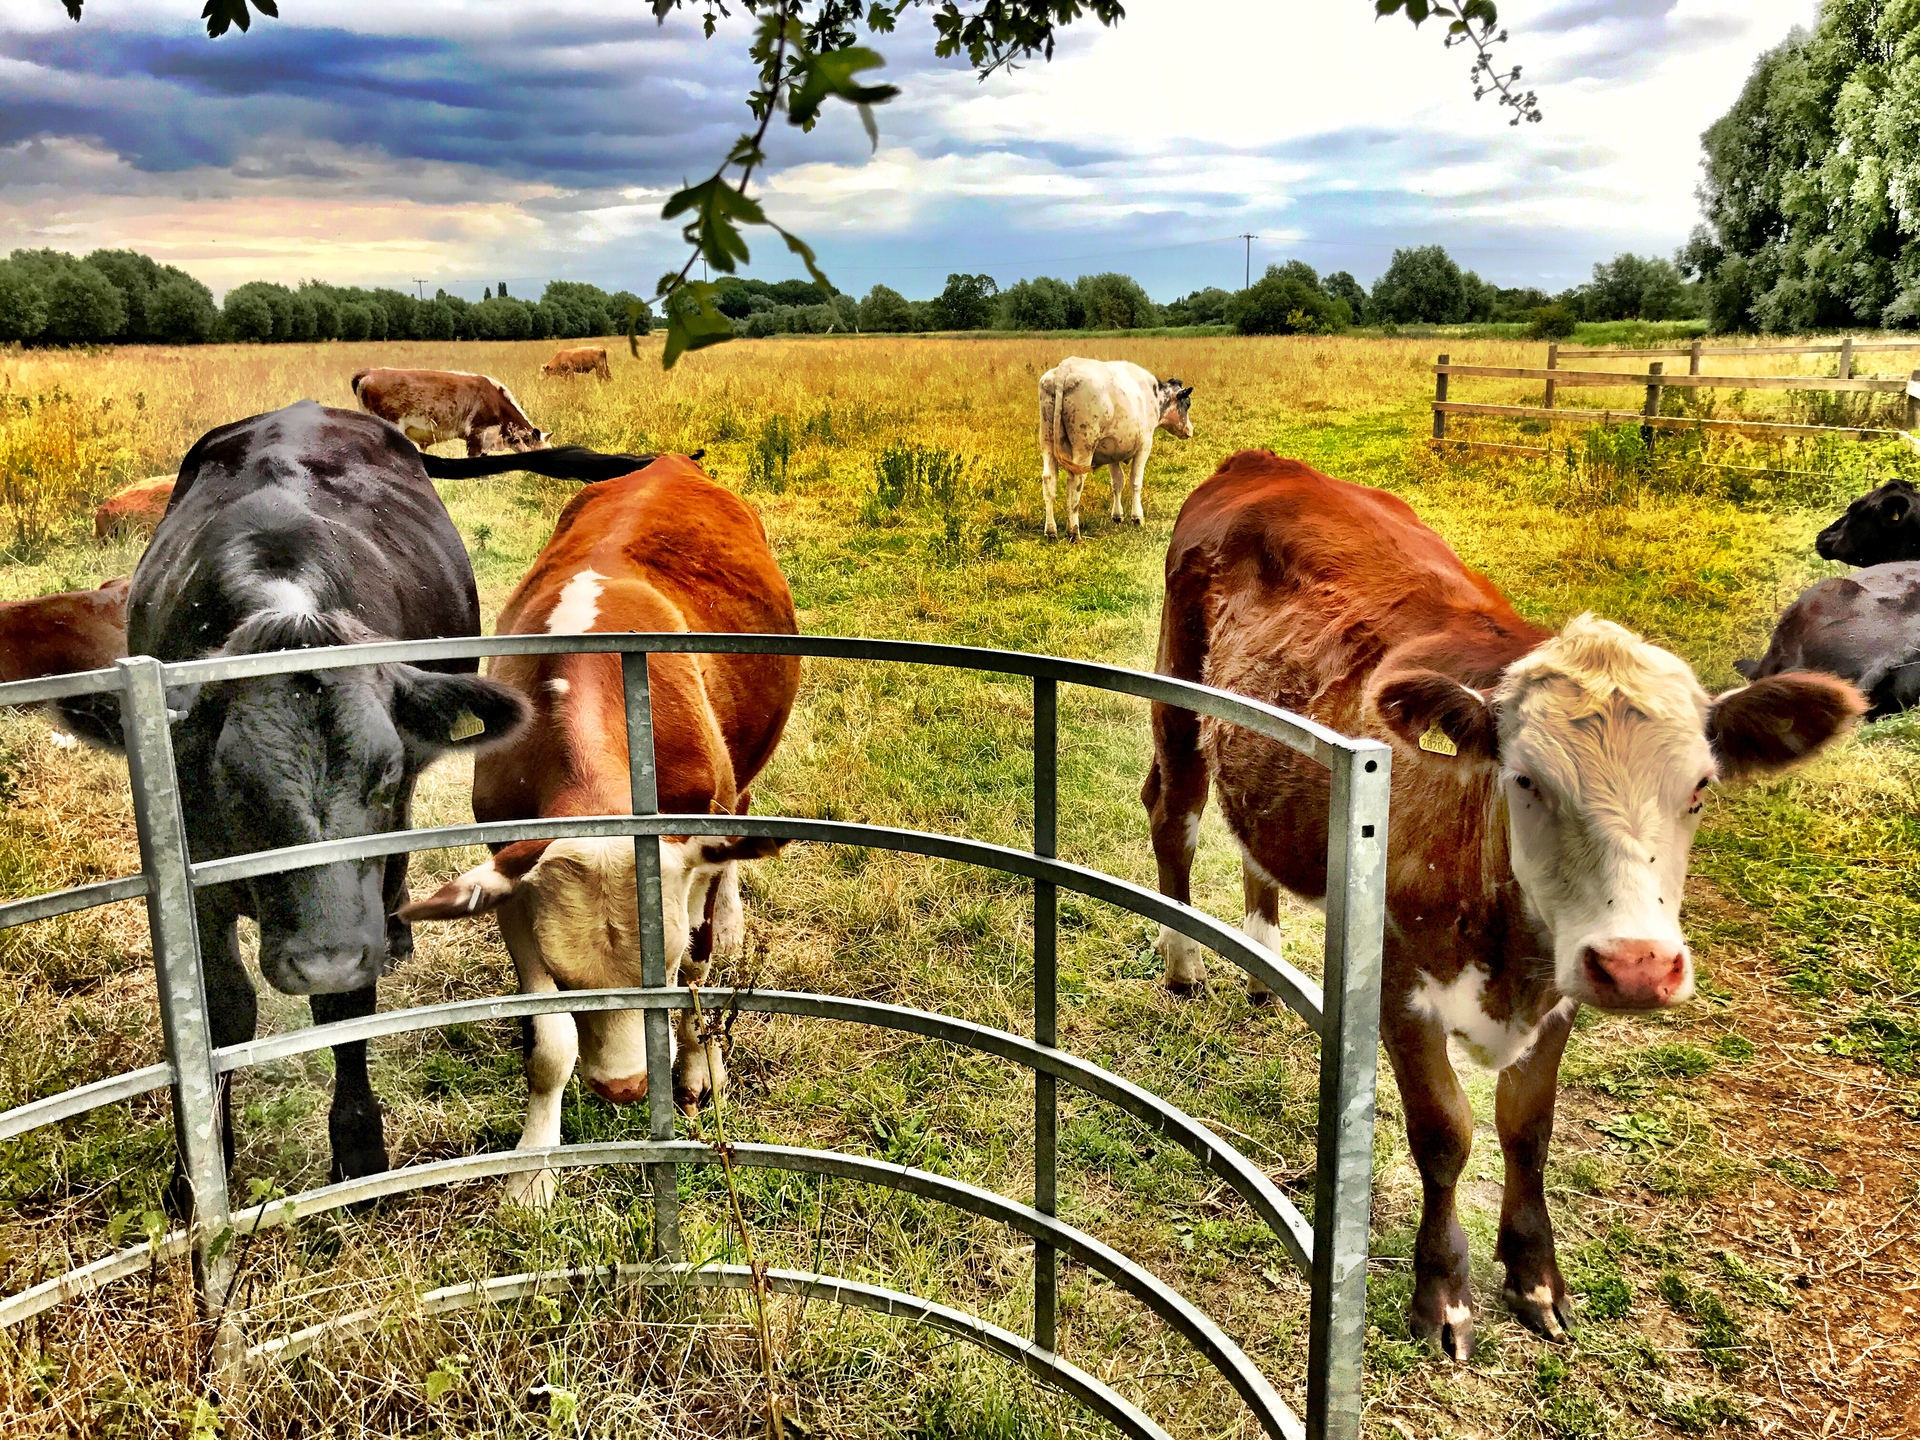 Cows at gate | mezmic, cow, agriculture, livestock